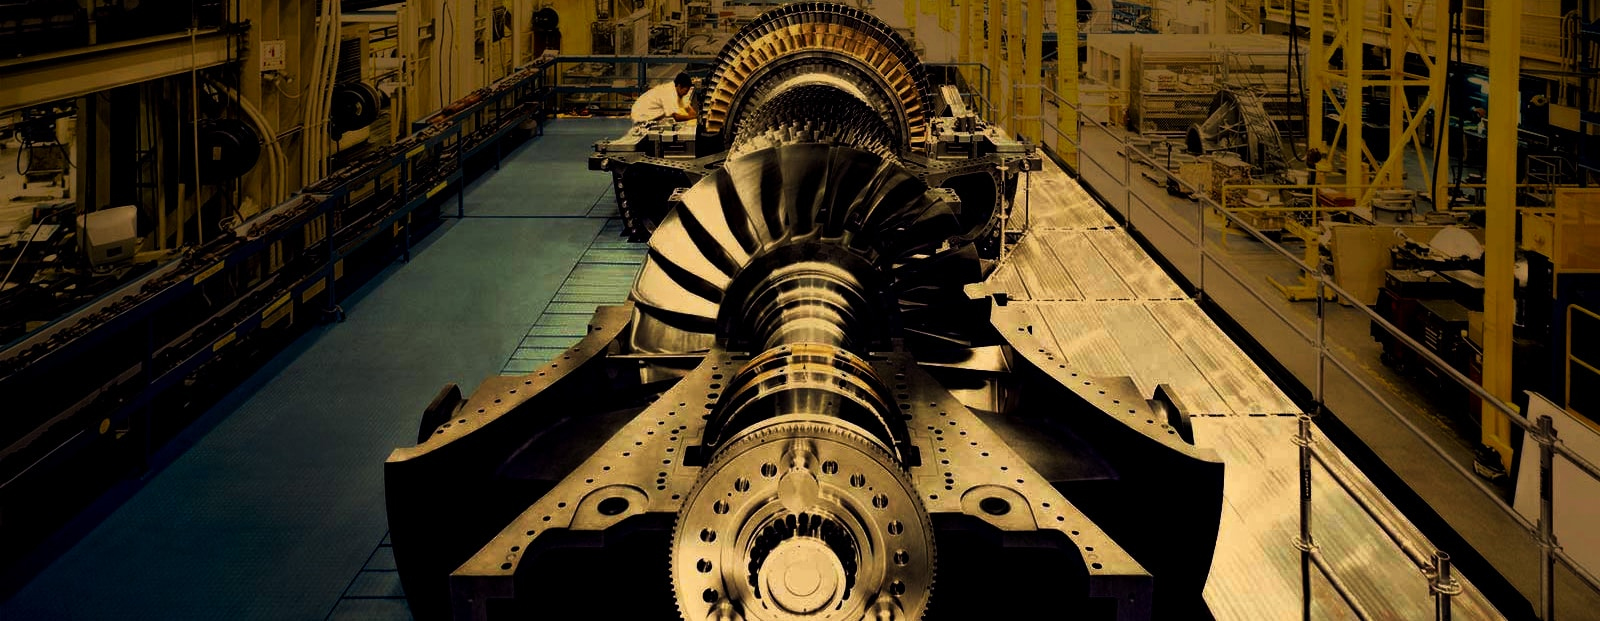 BGGTS - Outstanding Expertise in Gas Turbine Technology Services